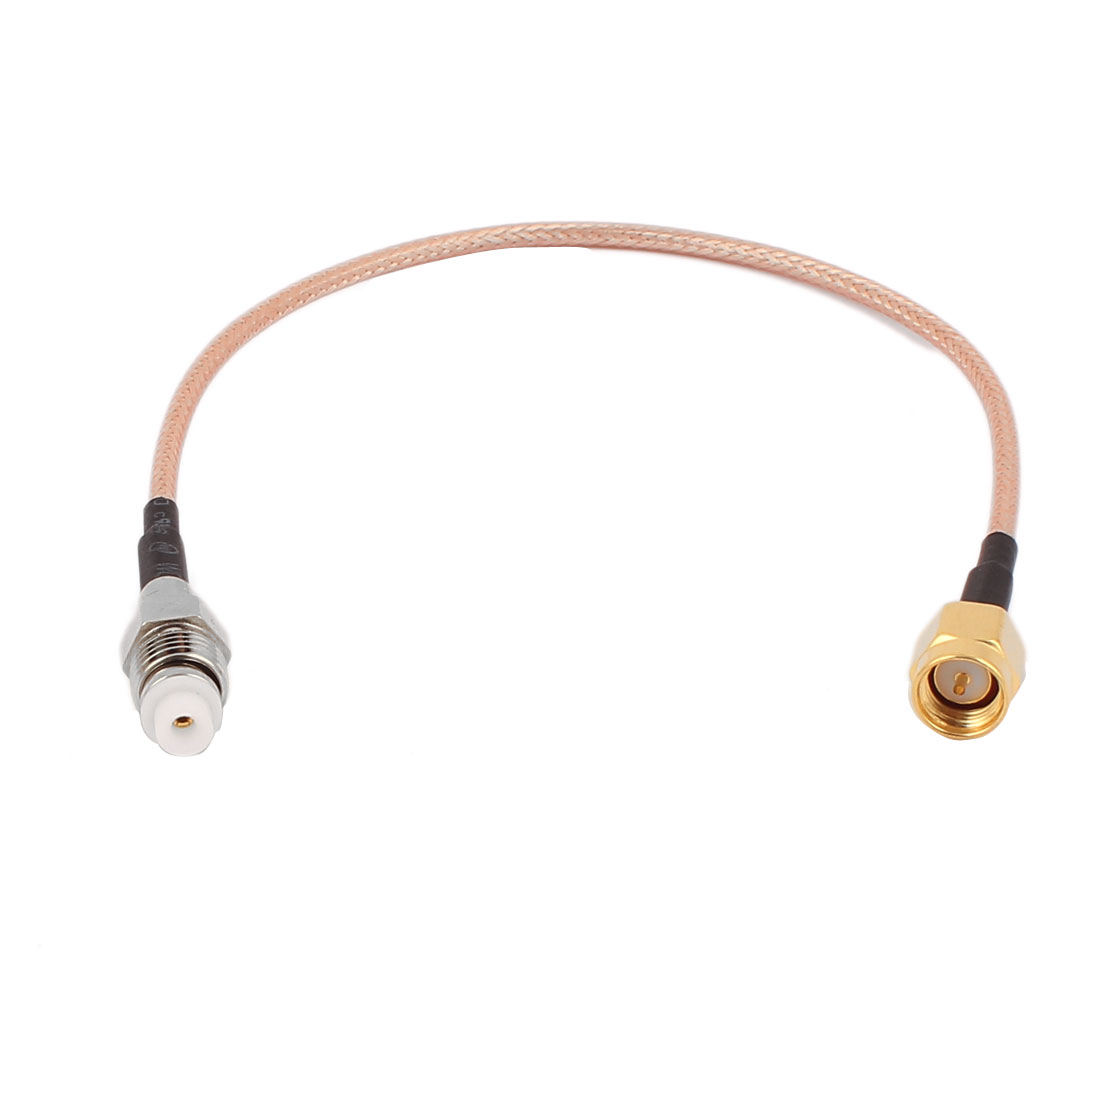 FME-K Female to SMA-J Male RG316 Coaxial Cable Pigtail 20cm